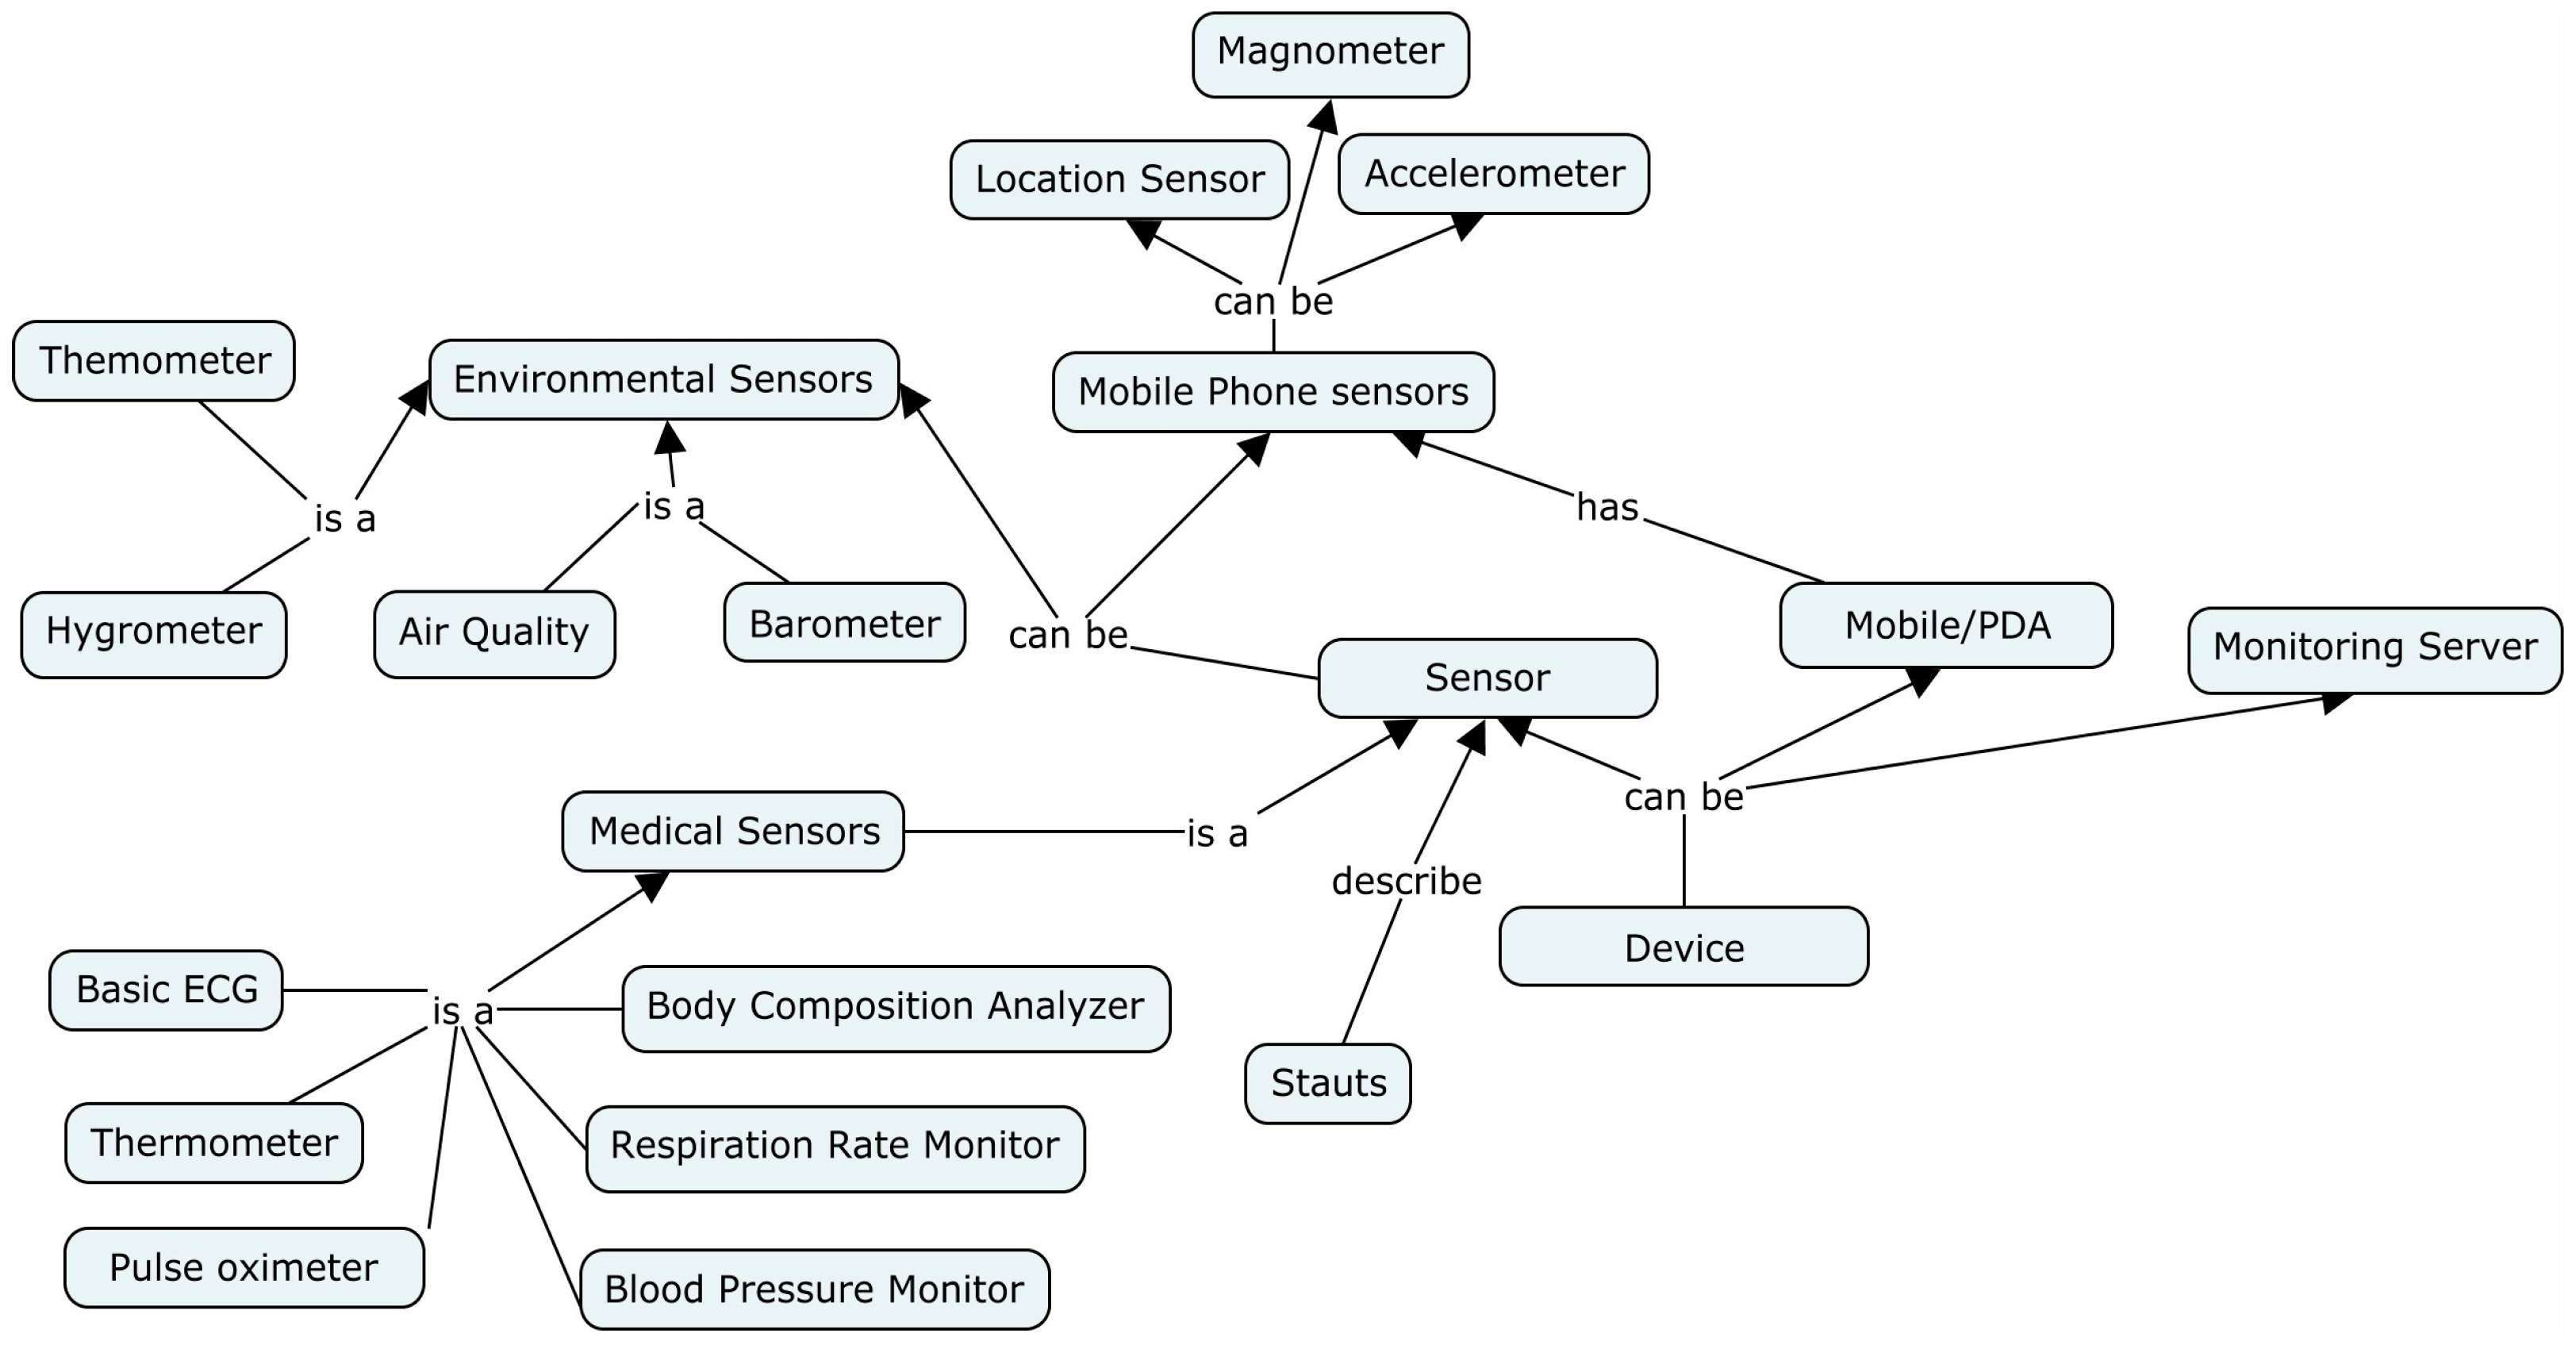 Electronics Free Full Text Ontology Based Model To Support Books Learn Conceptually On Learning About No